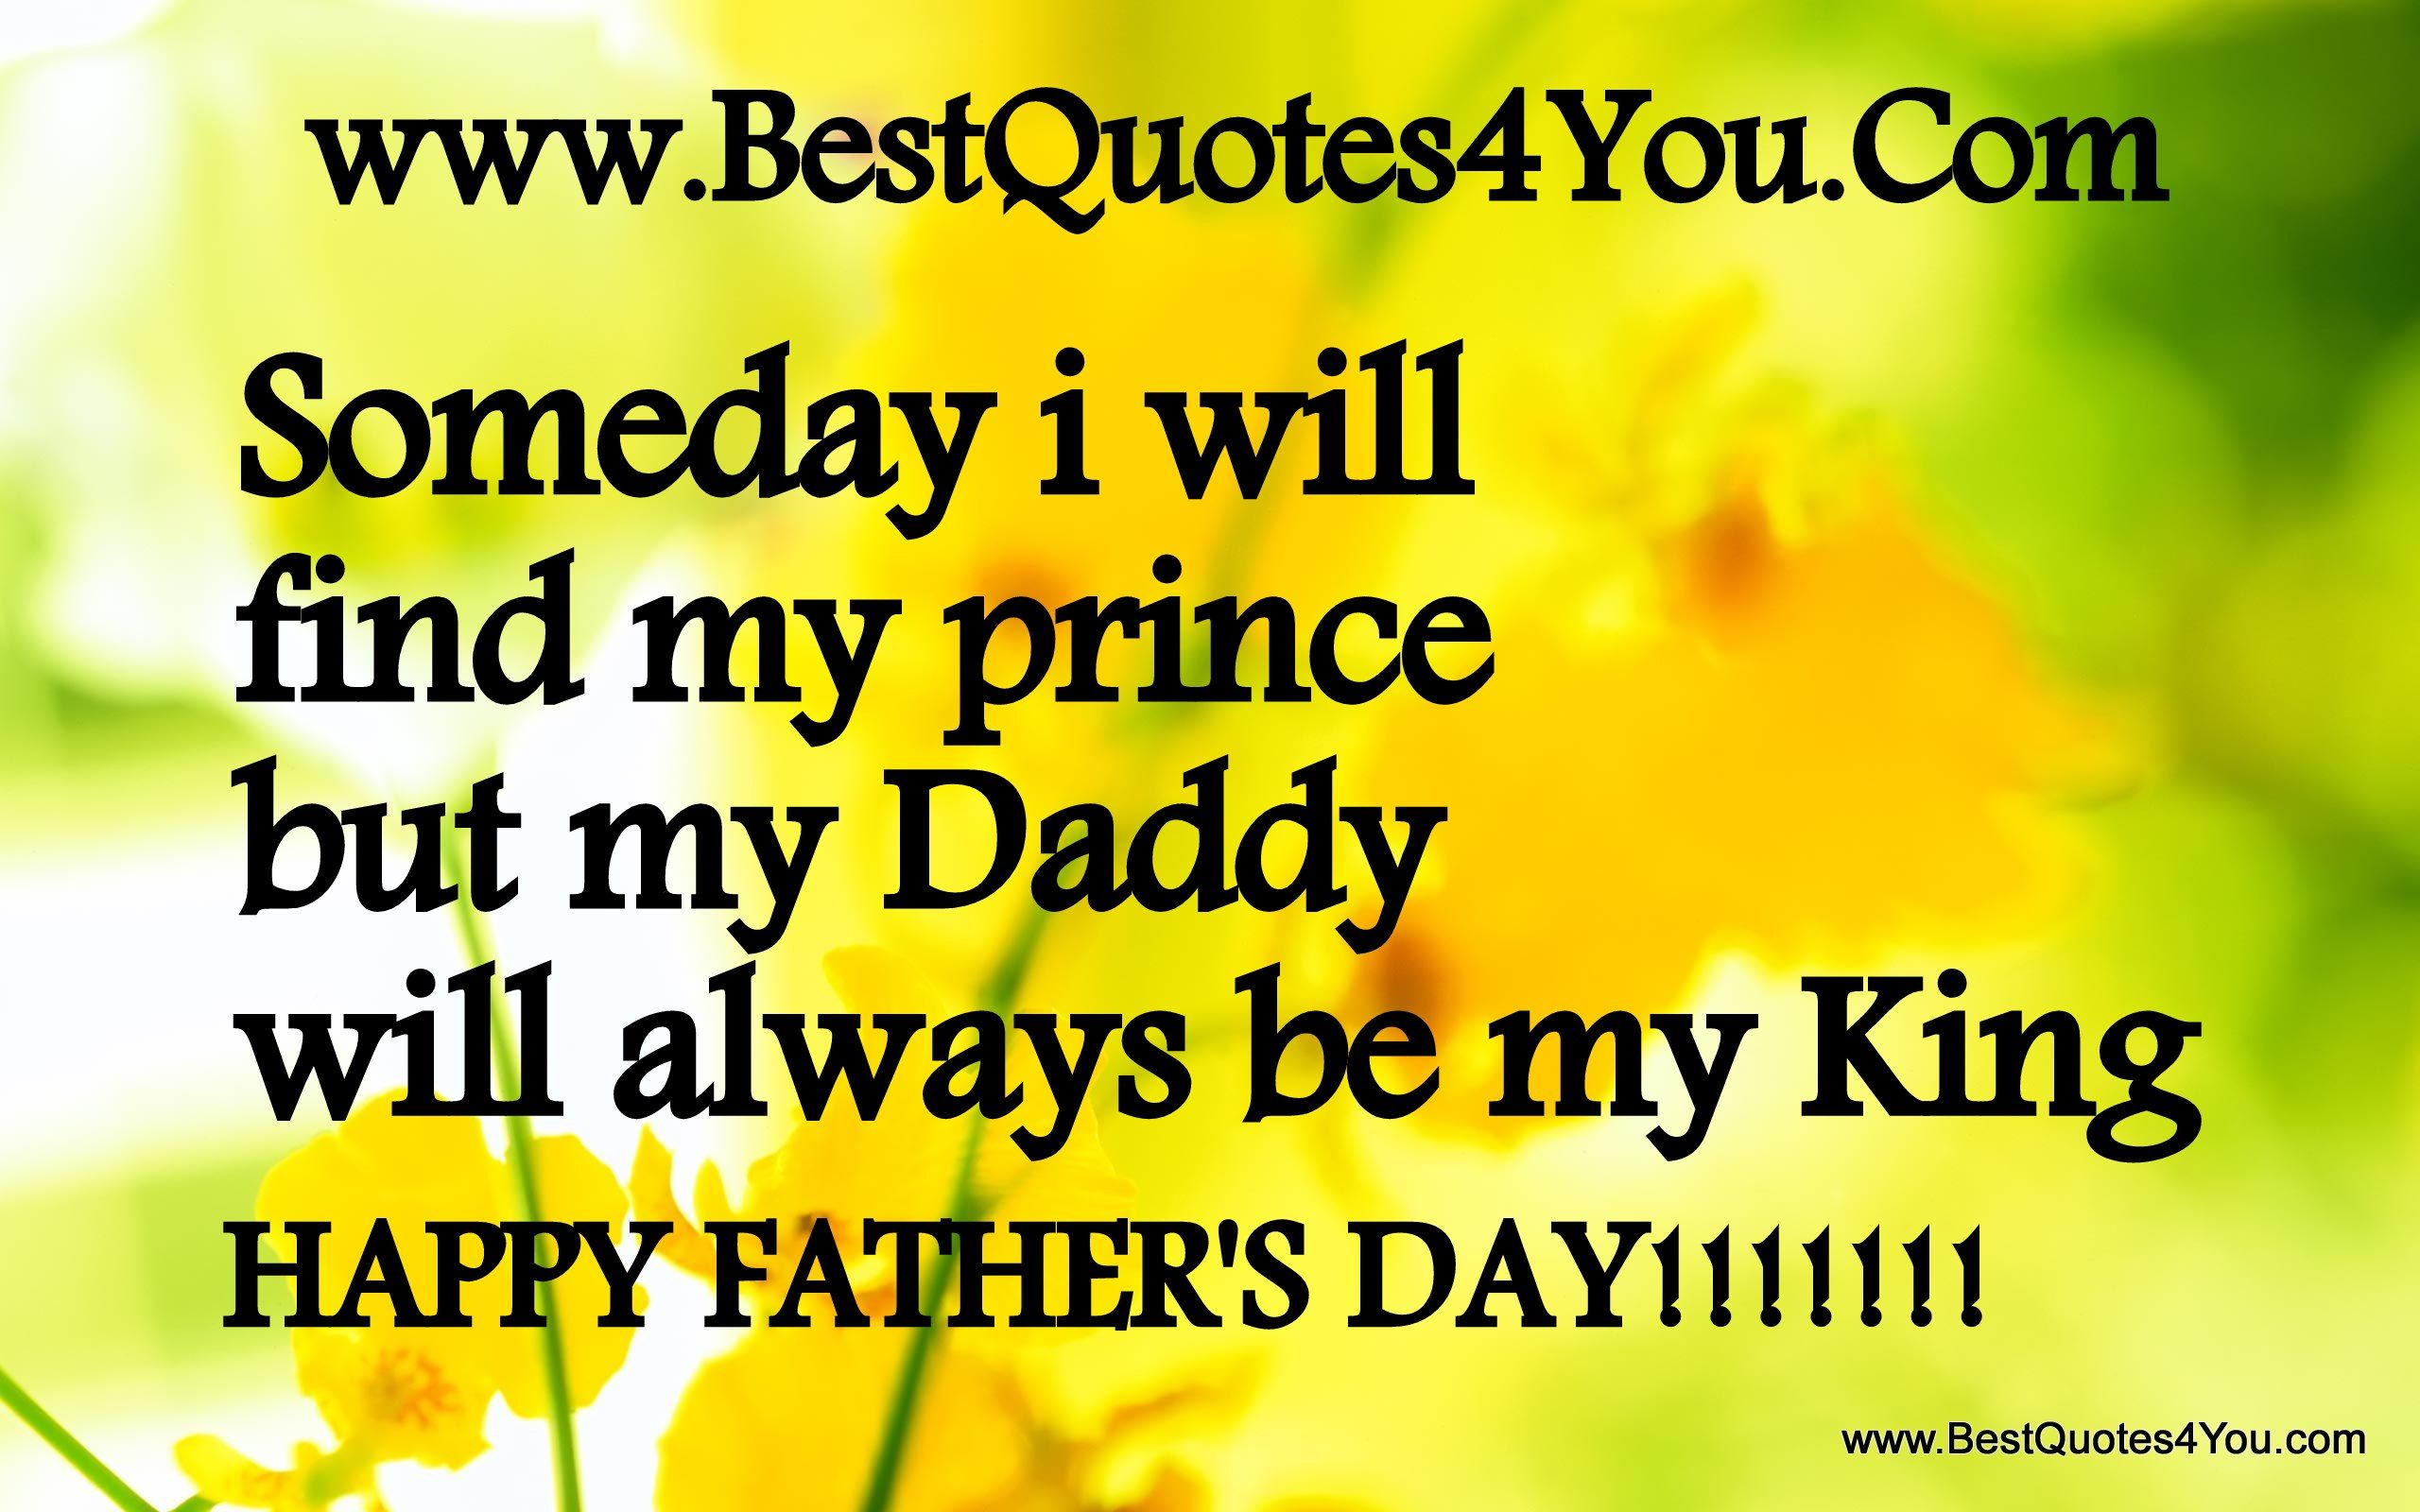 Share Large Collection Of Quotes Pictures Graphics Images Pics Photos For Facebook Myspace Hi Happy Father Day Quotes Dad Quotes Dad Quotes From Daughter